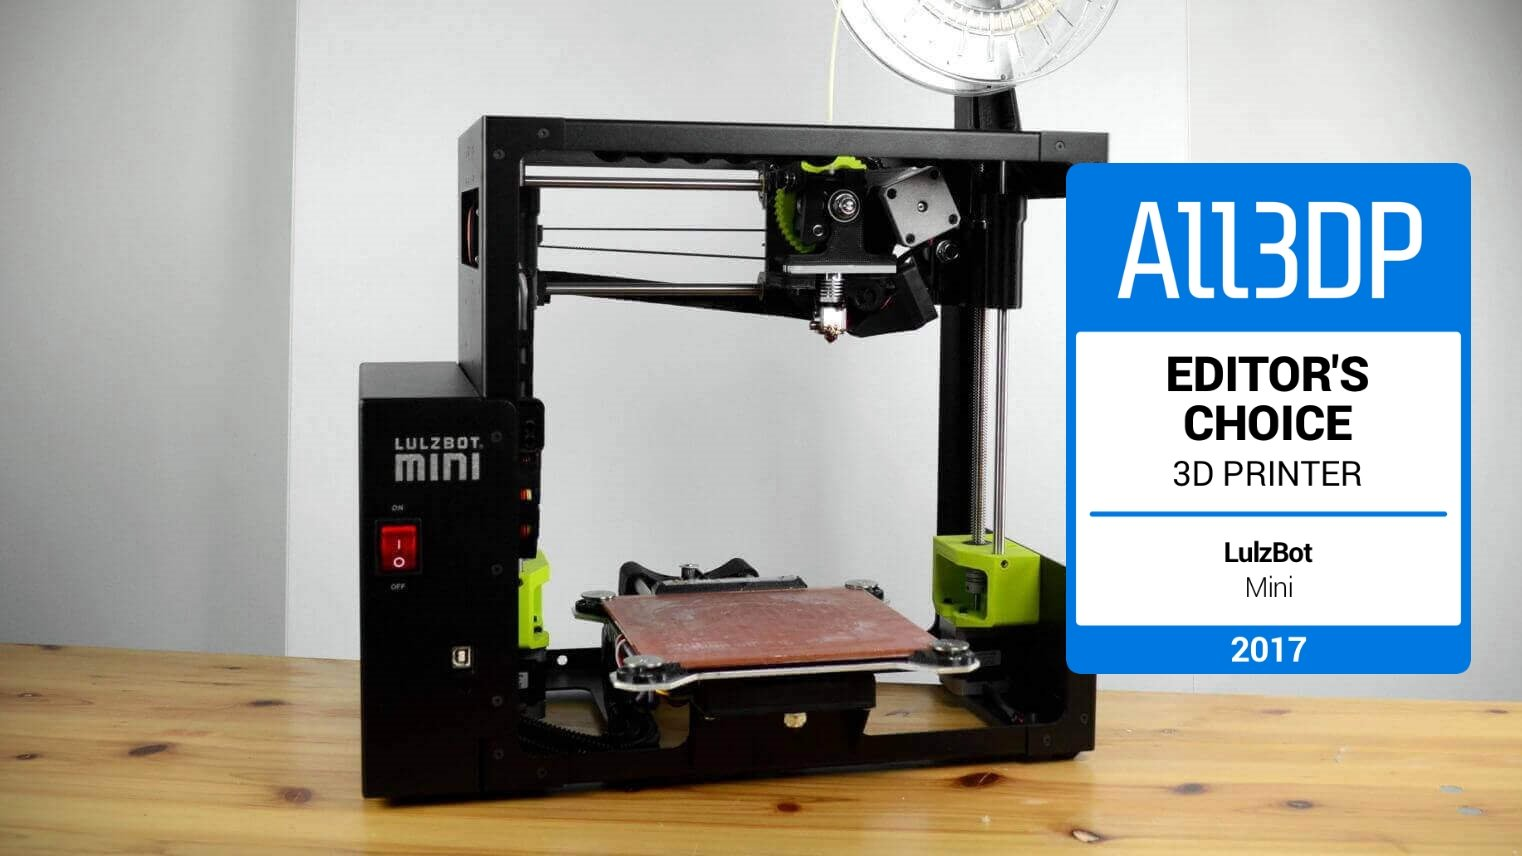 LulzBot Mini Review: This Mighty 3D Printer Does the Job | All3DP